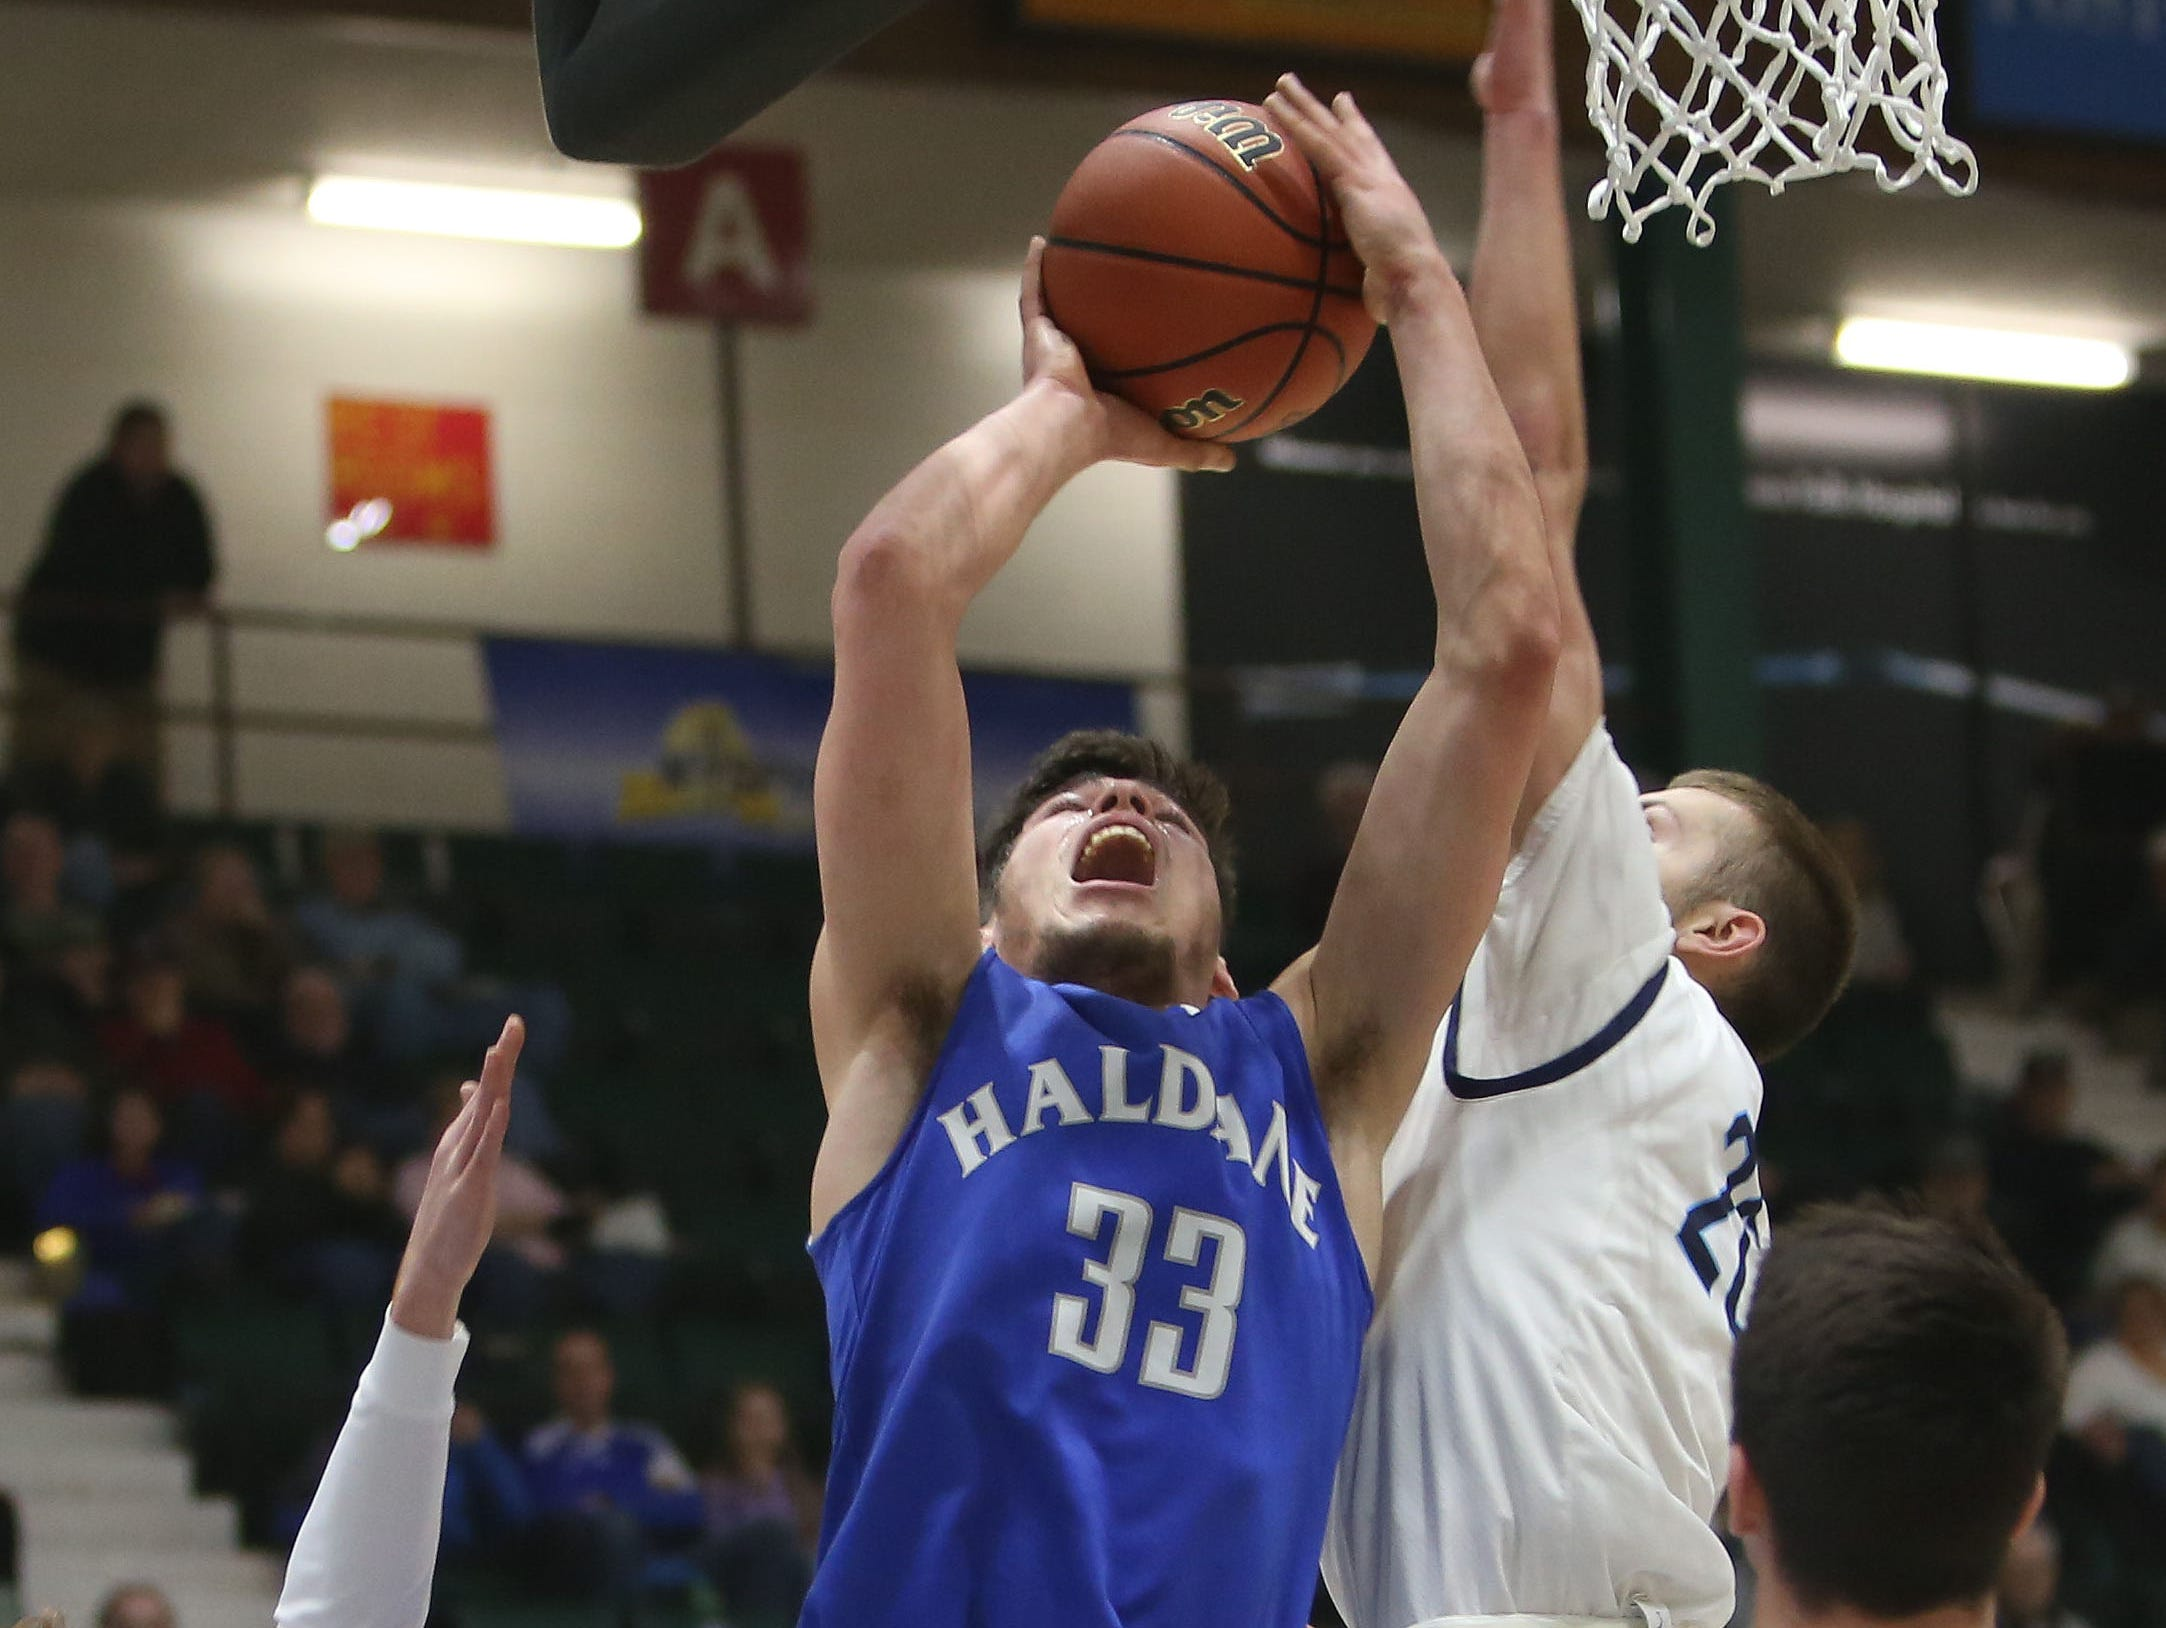 Haldane's Will Zuvic (33) drives to the basket against Moravia during the boys Class C semifinal at the Glens Falls Civic Center March 11, 2016. Haldane won the game 36-34.